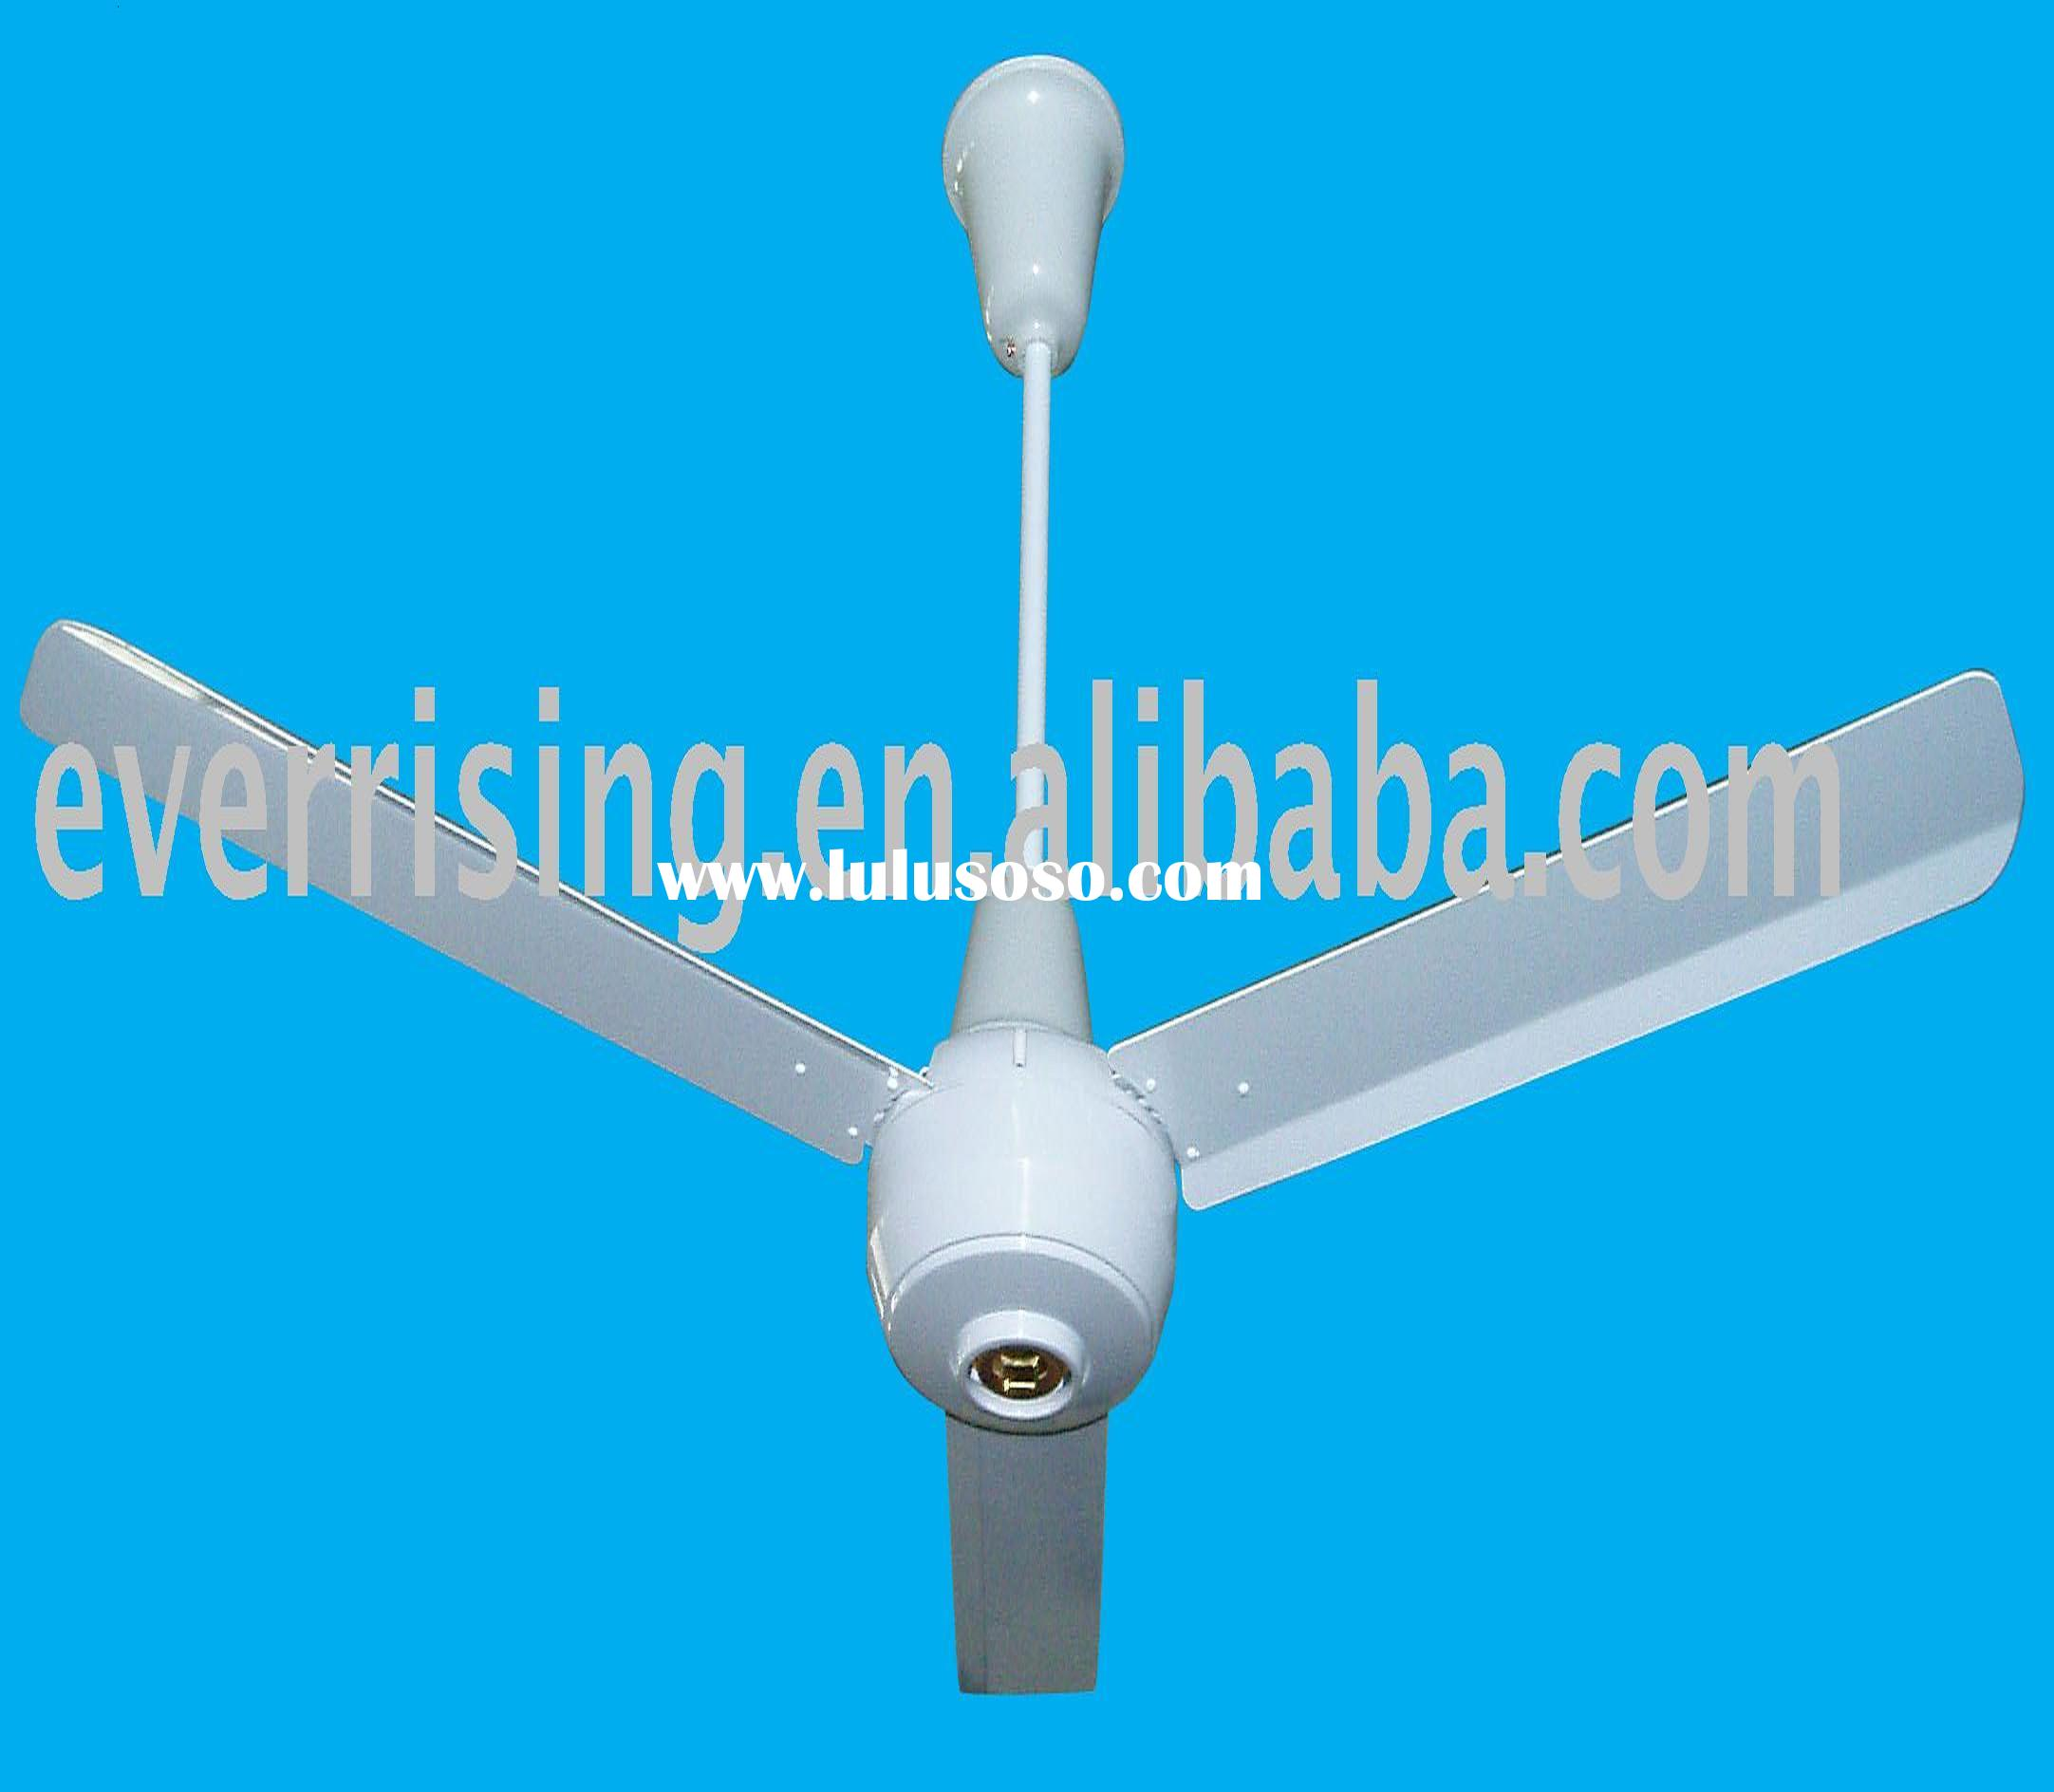 Avion ceiling fan parts ceiling fan ideas avion ceiling fan parts manufacturers in aloadofball Choice Image